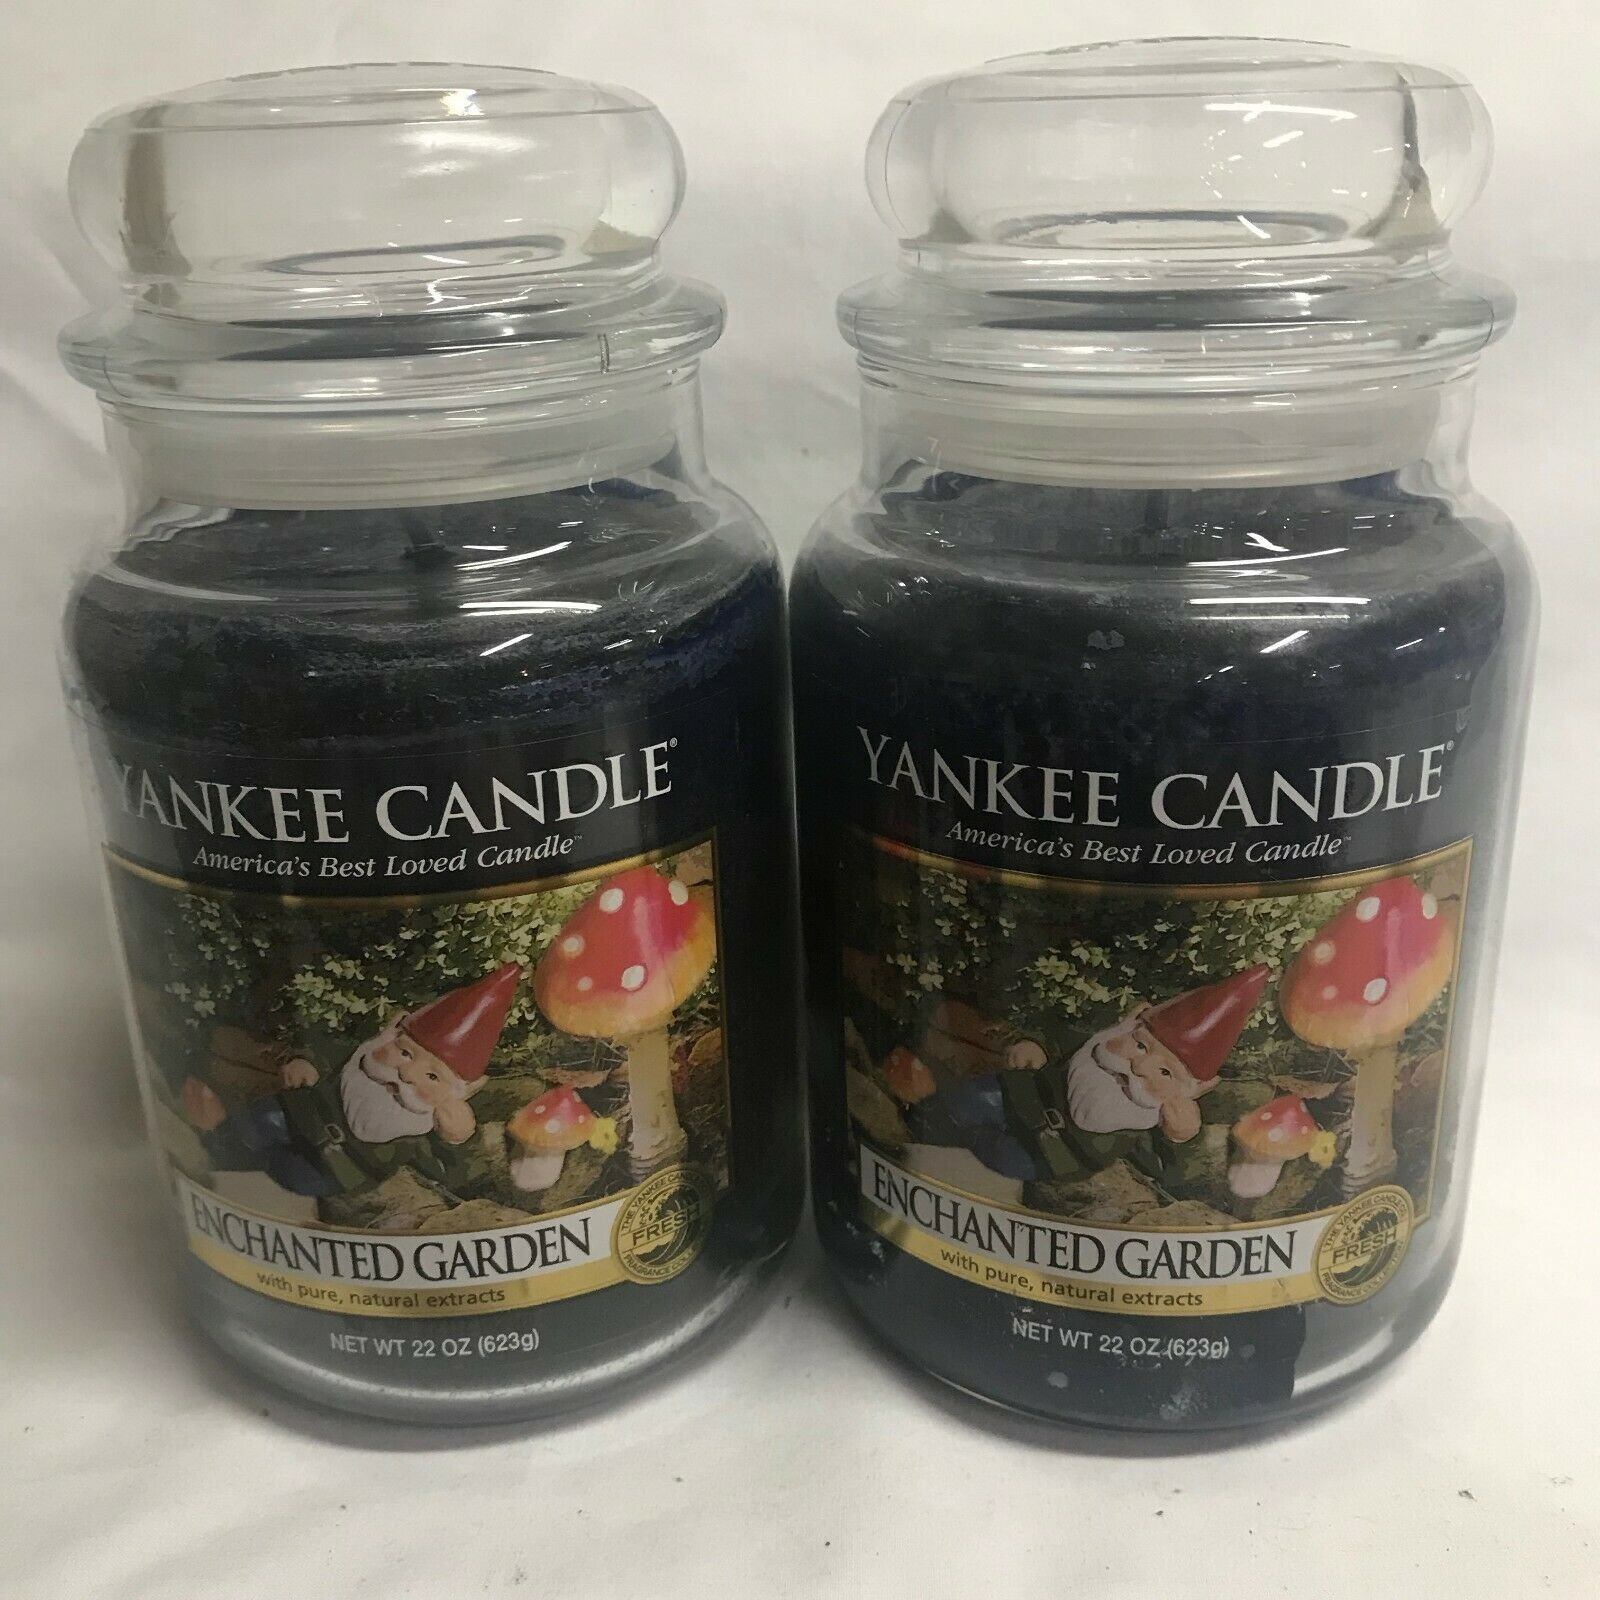 Yankee Candle Lot of (2) ENCHANTED GARDEN Large 22 oz Jar Candles TWO